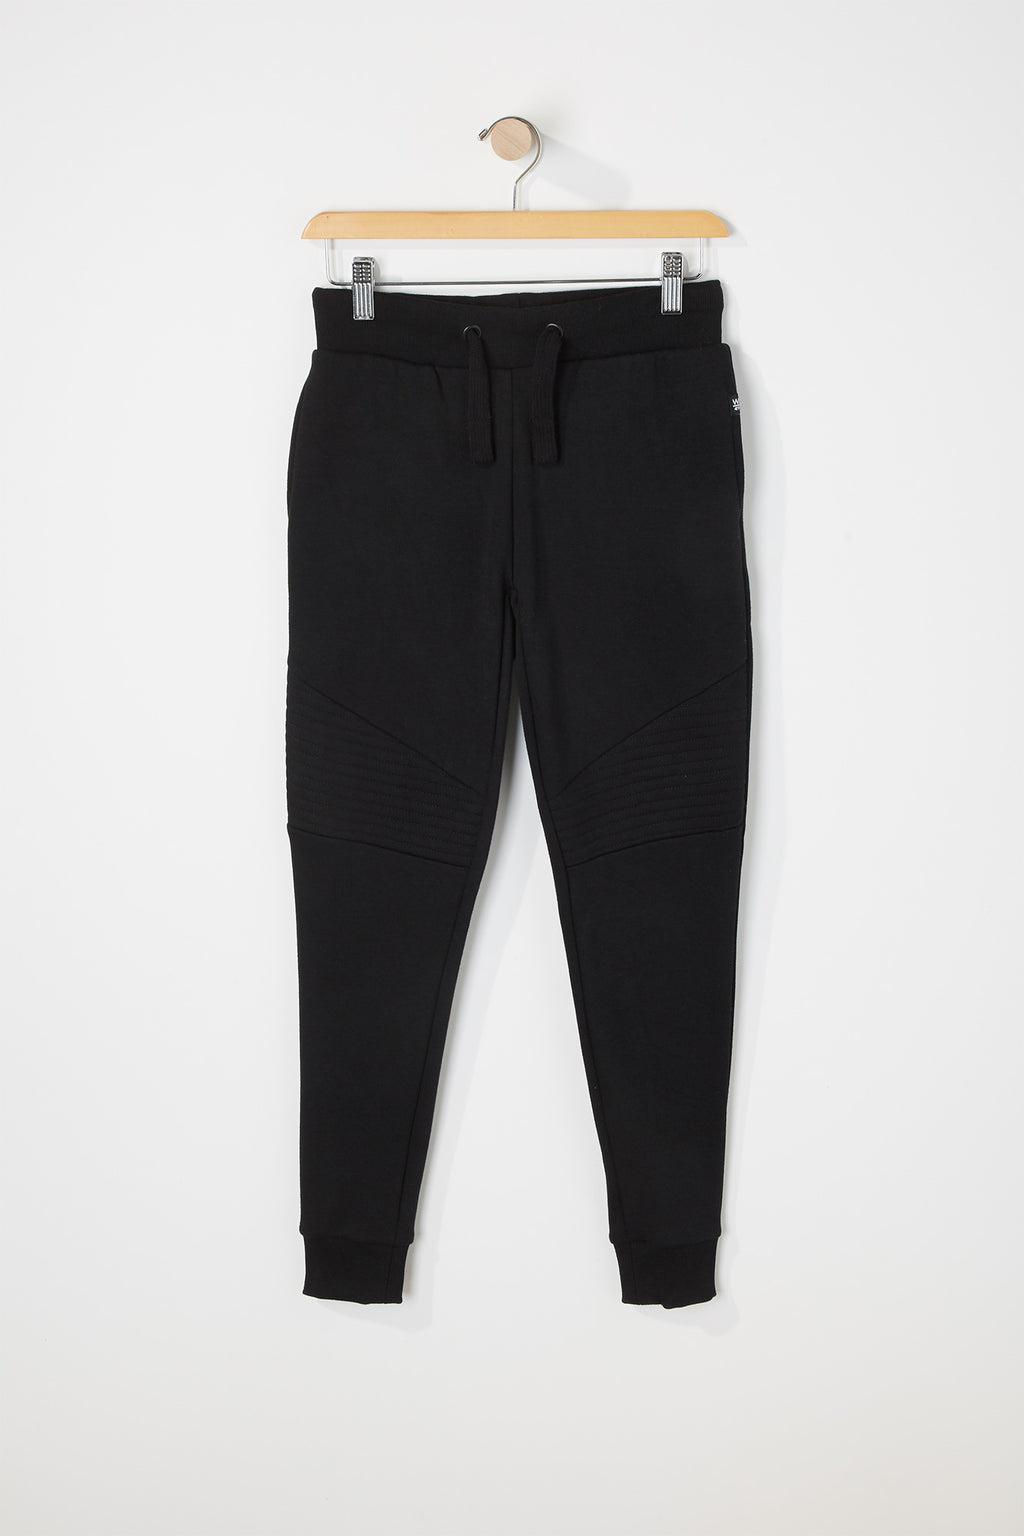 West49 Boys Solid Moto Jogger